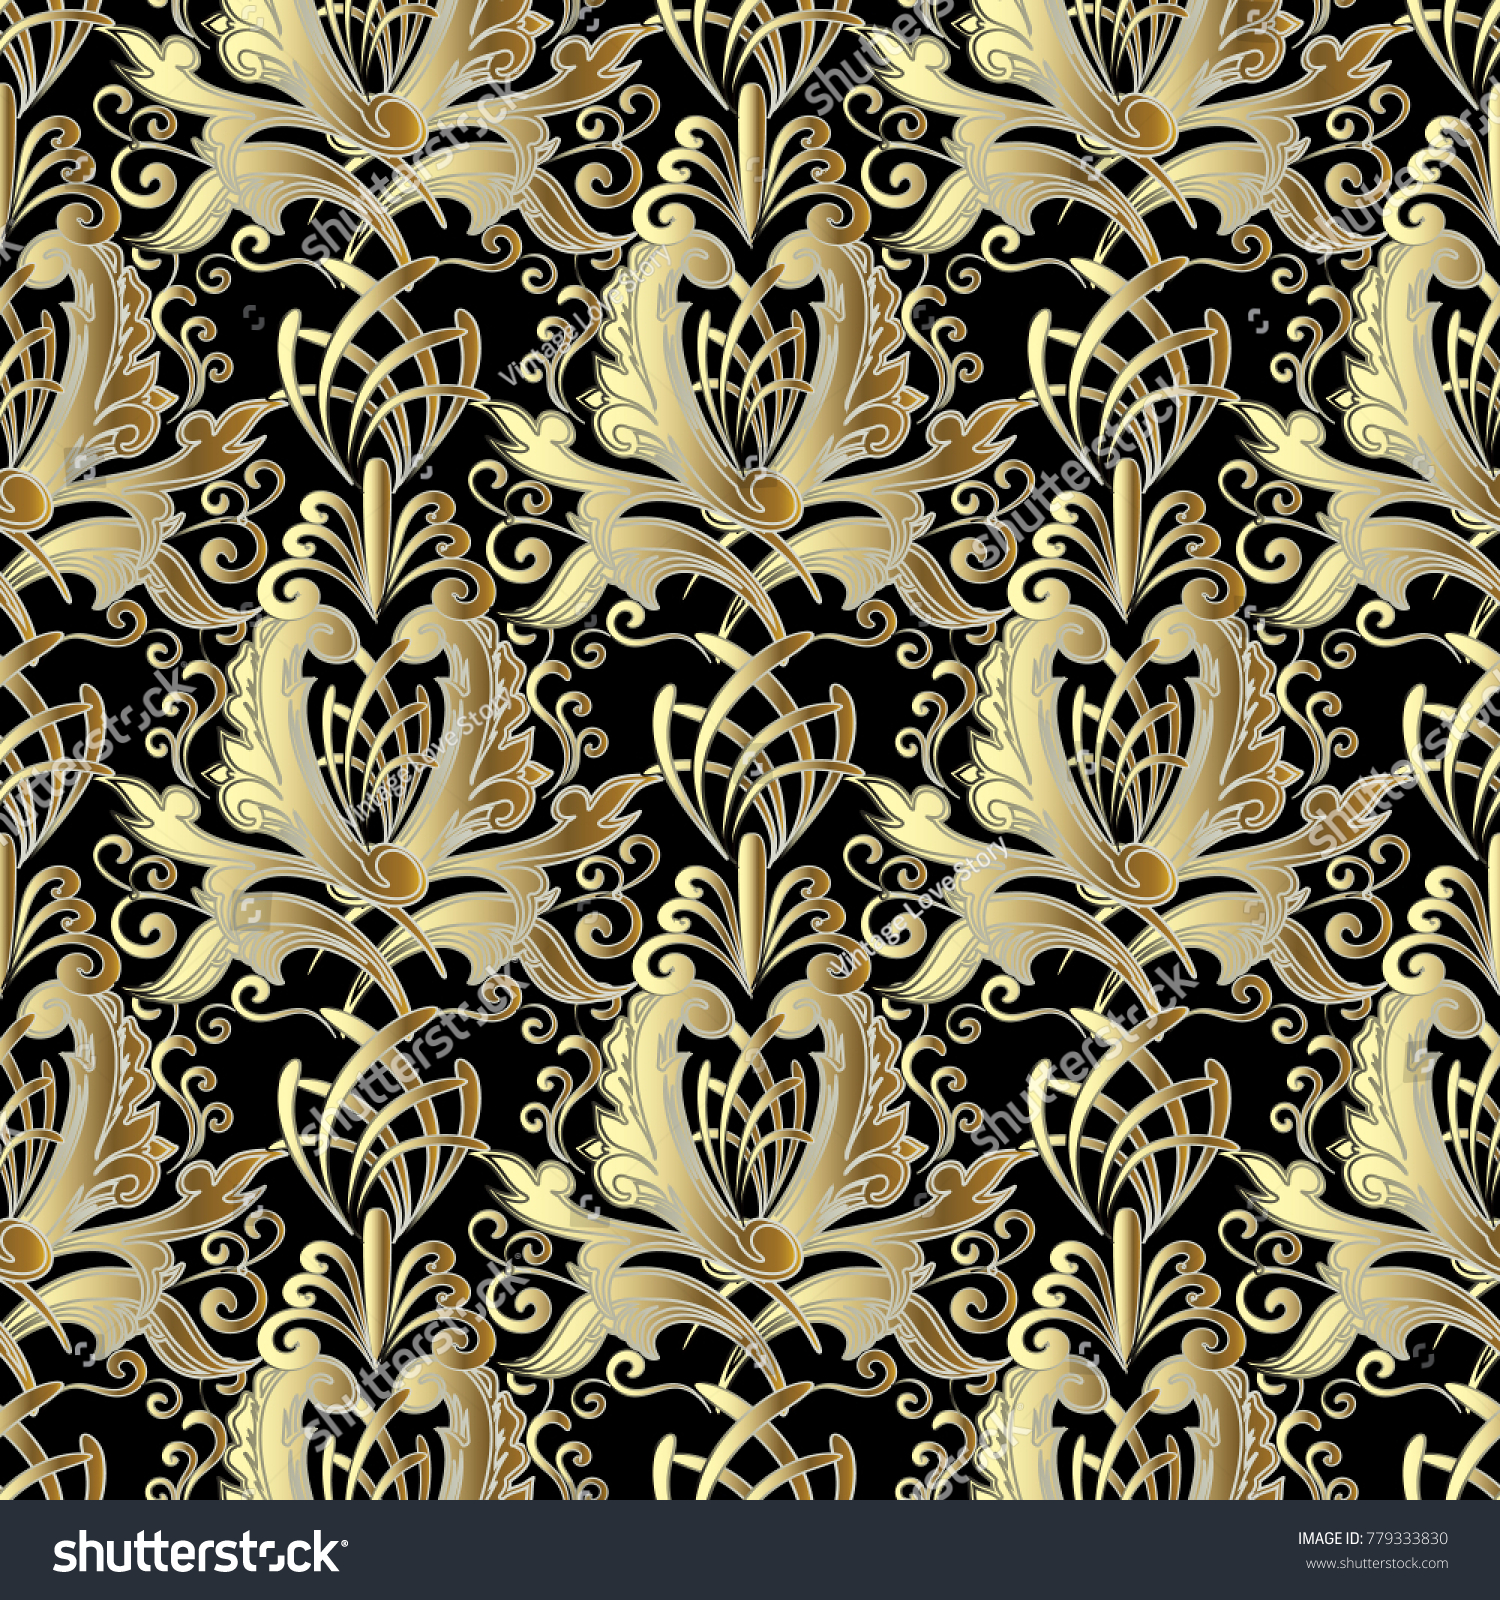 Gold Baroque Vector Seamless Pattern Vintage 779333830